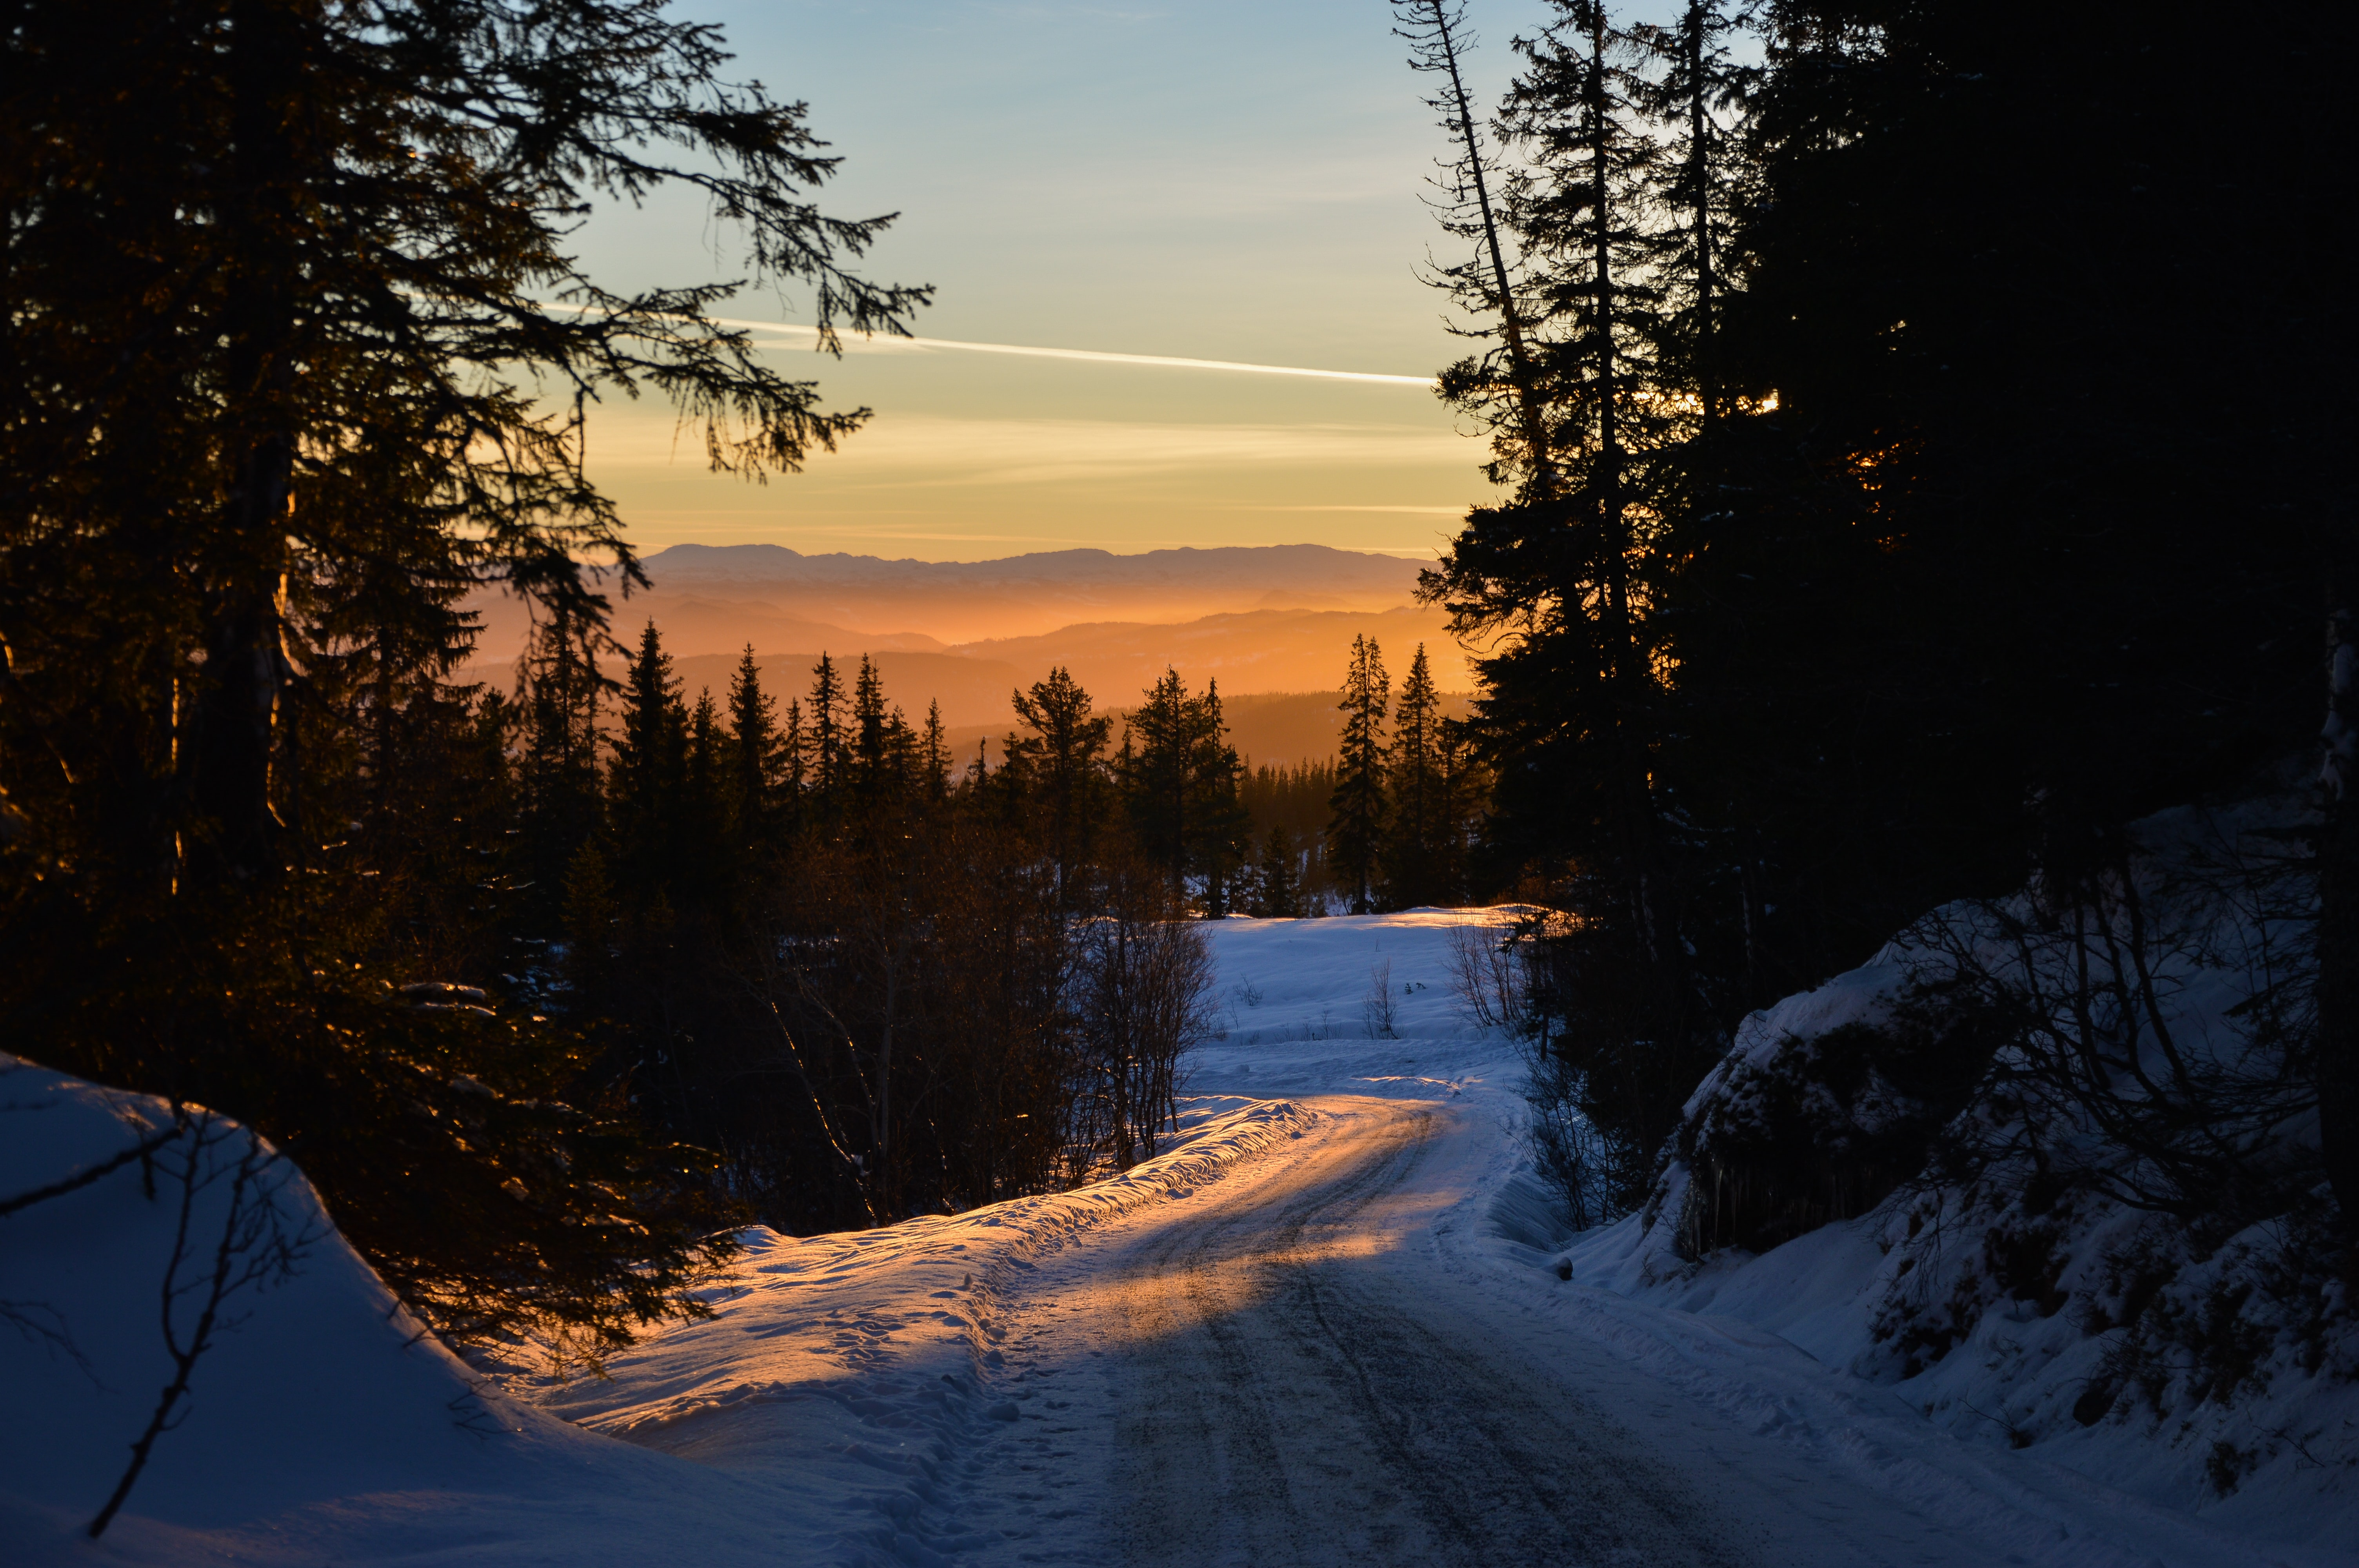 Sunset on the roads of Gråkallen, Norway's snowy forest mountains